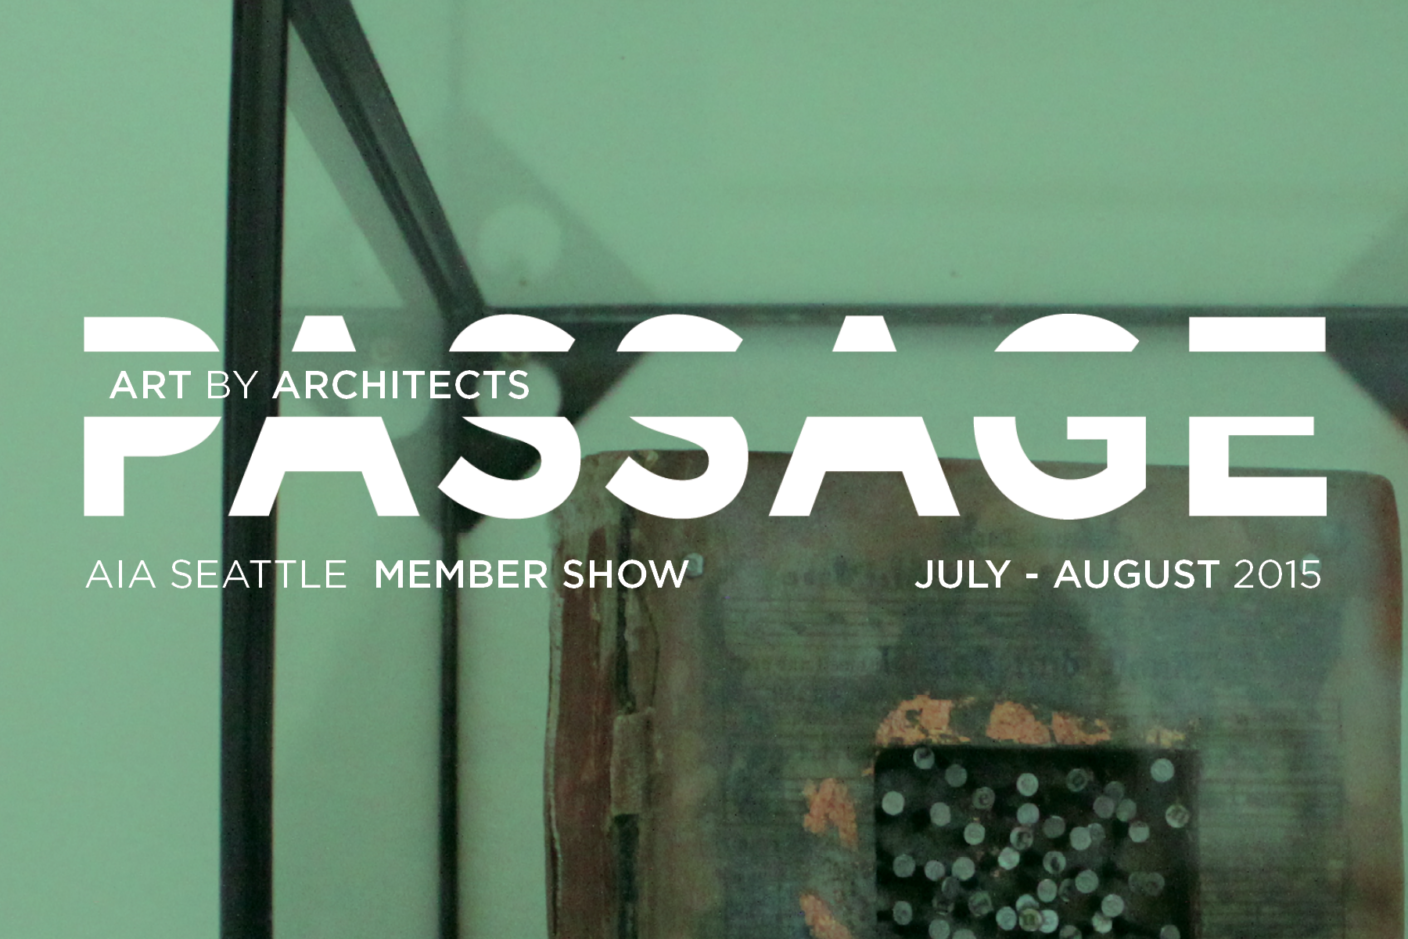 AIA Seattle Members and AIA Associates are invited to submit member-produced artwork by June 17 for our annual AIA Seattle Member Art Show.